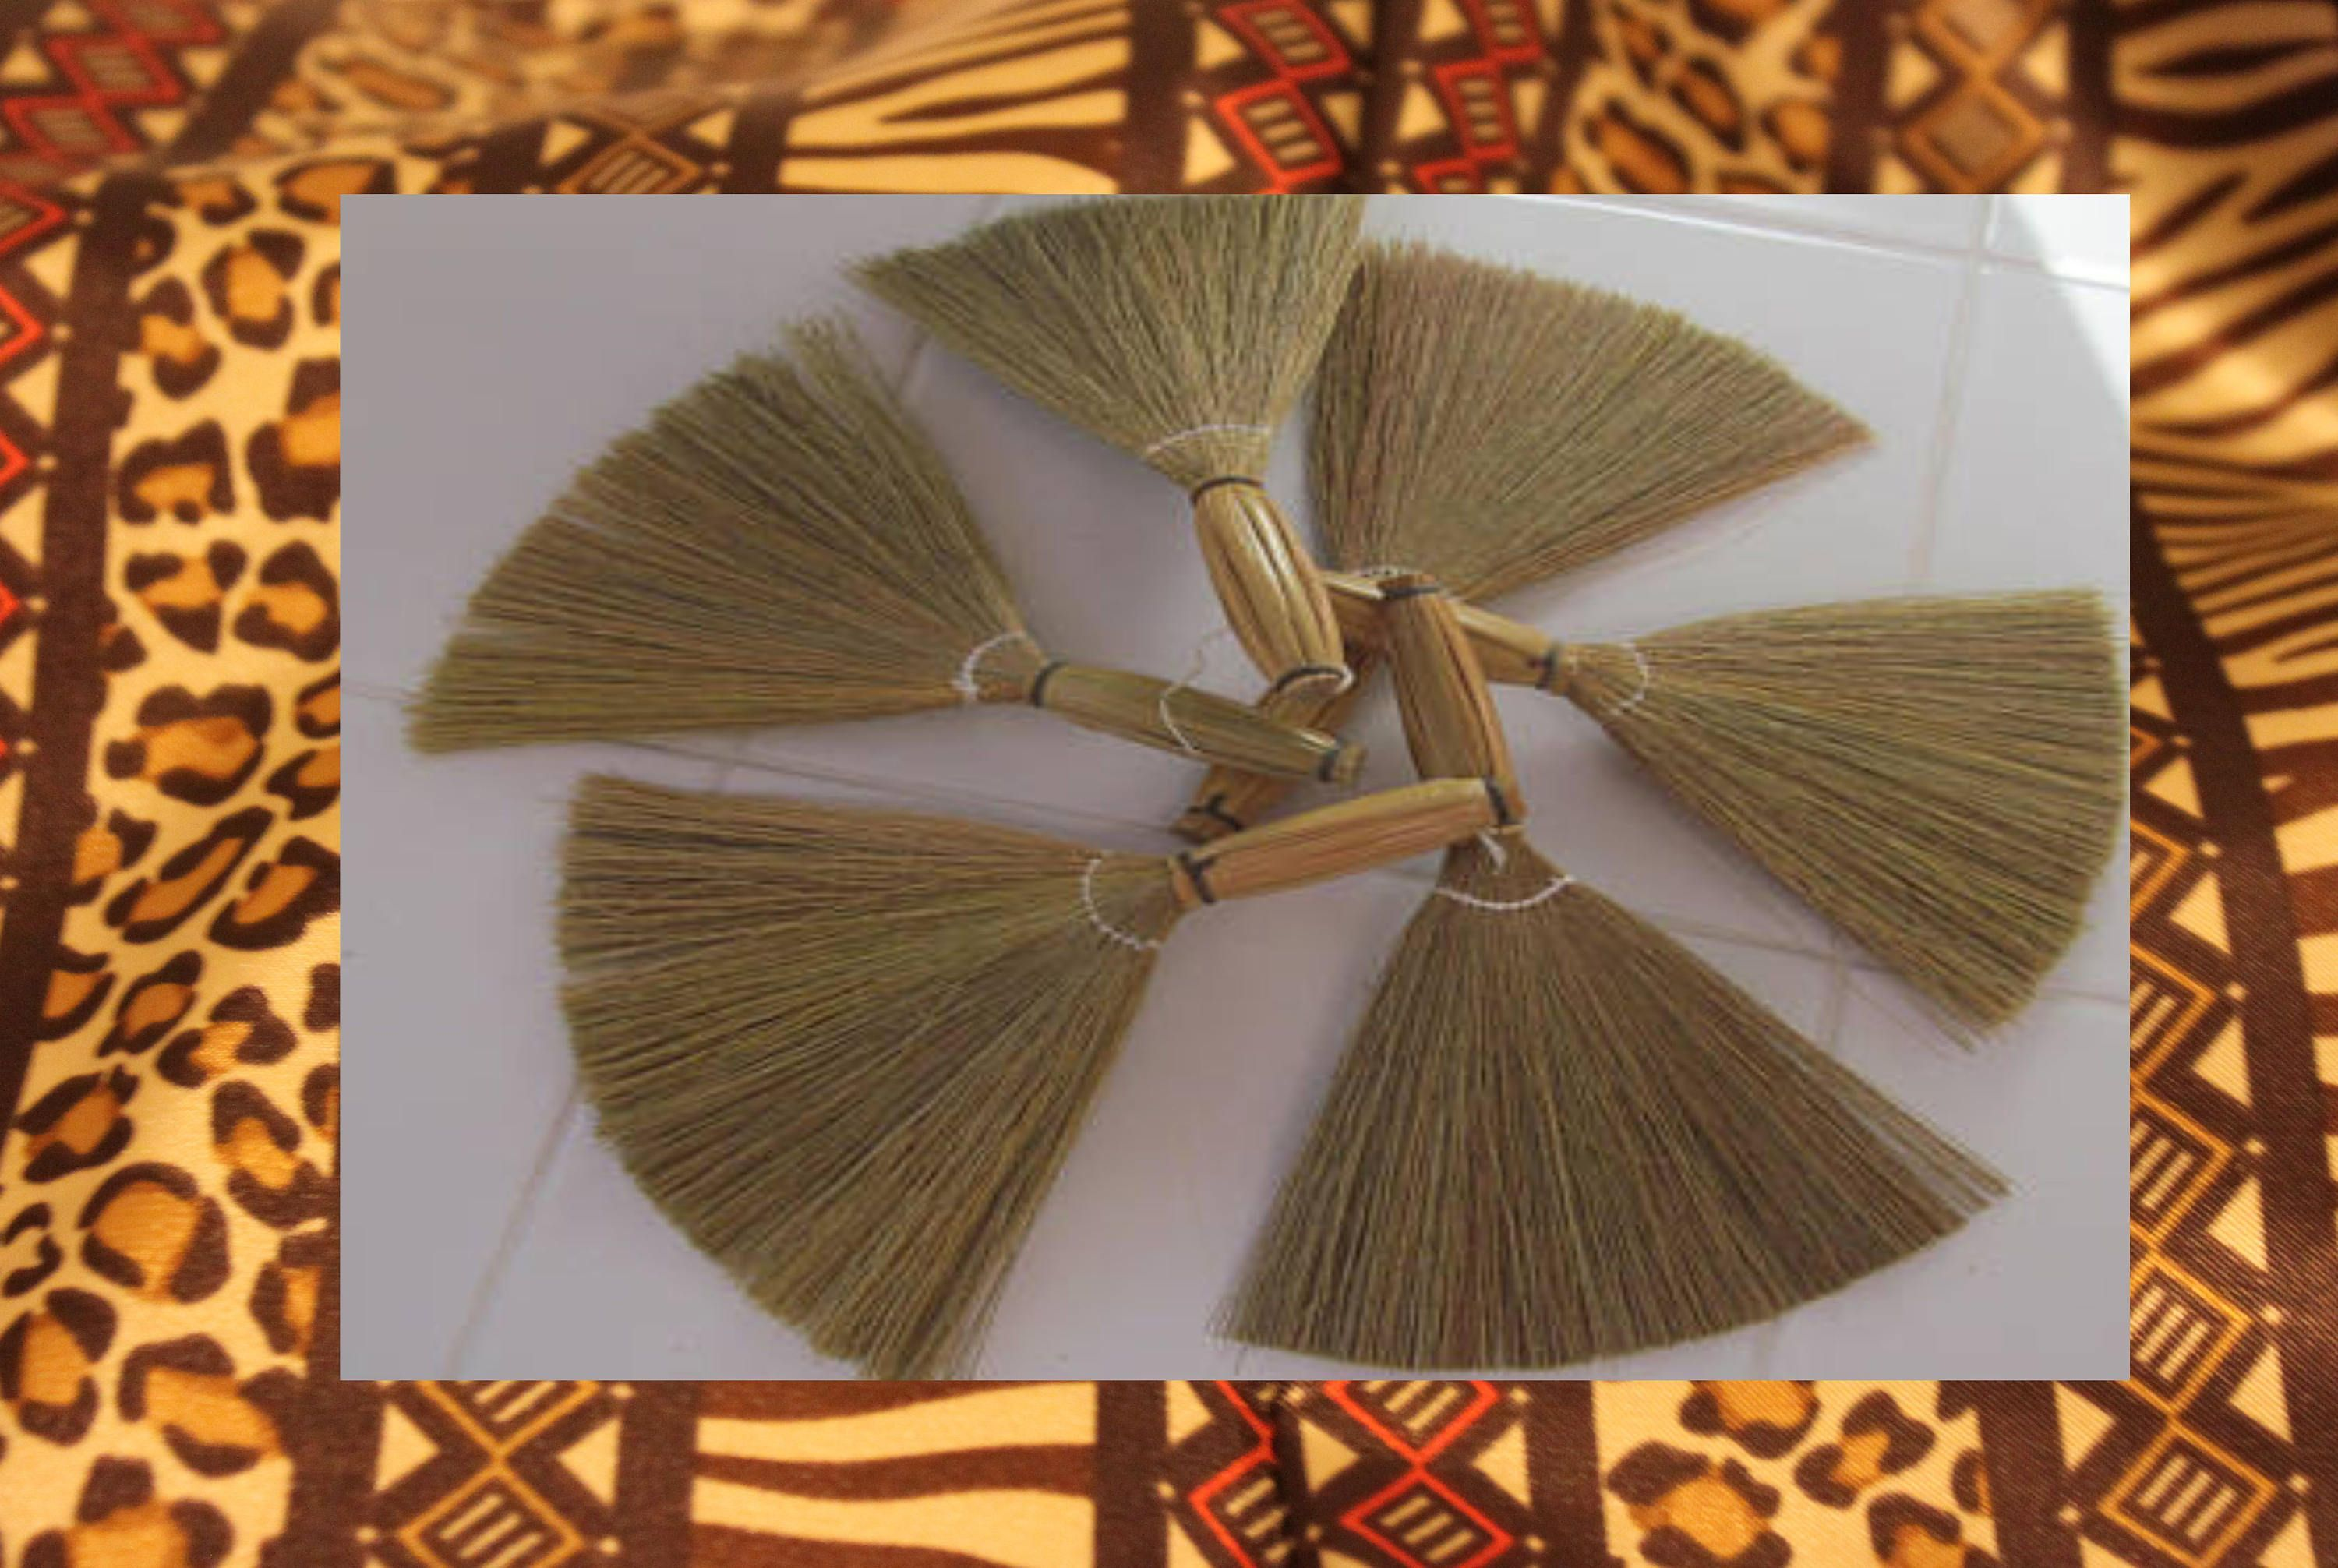 African Mini Brooms for Wedding Favors - Set of 6 | Broom Favors | Broom Dolls | Mini Jump The Broom